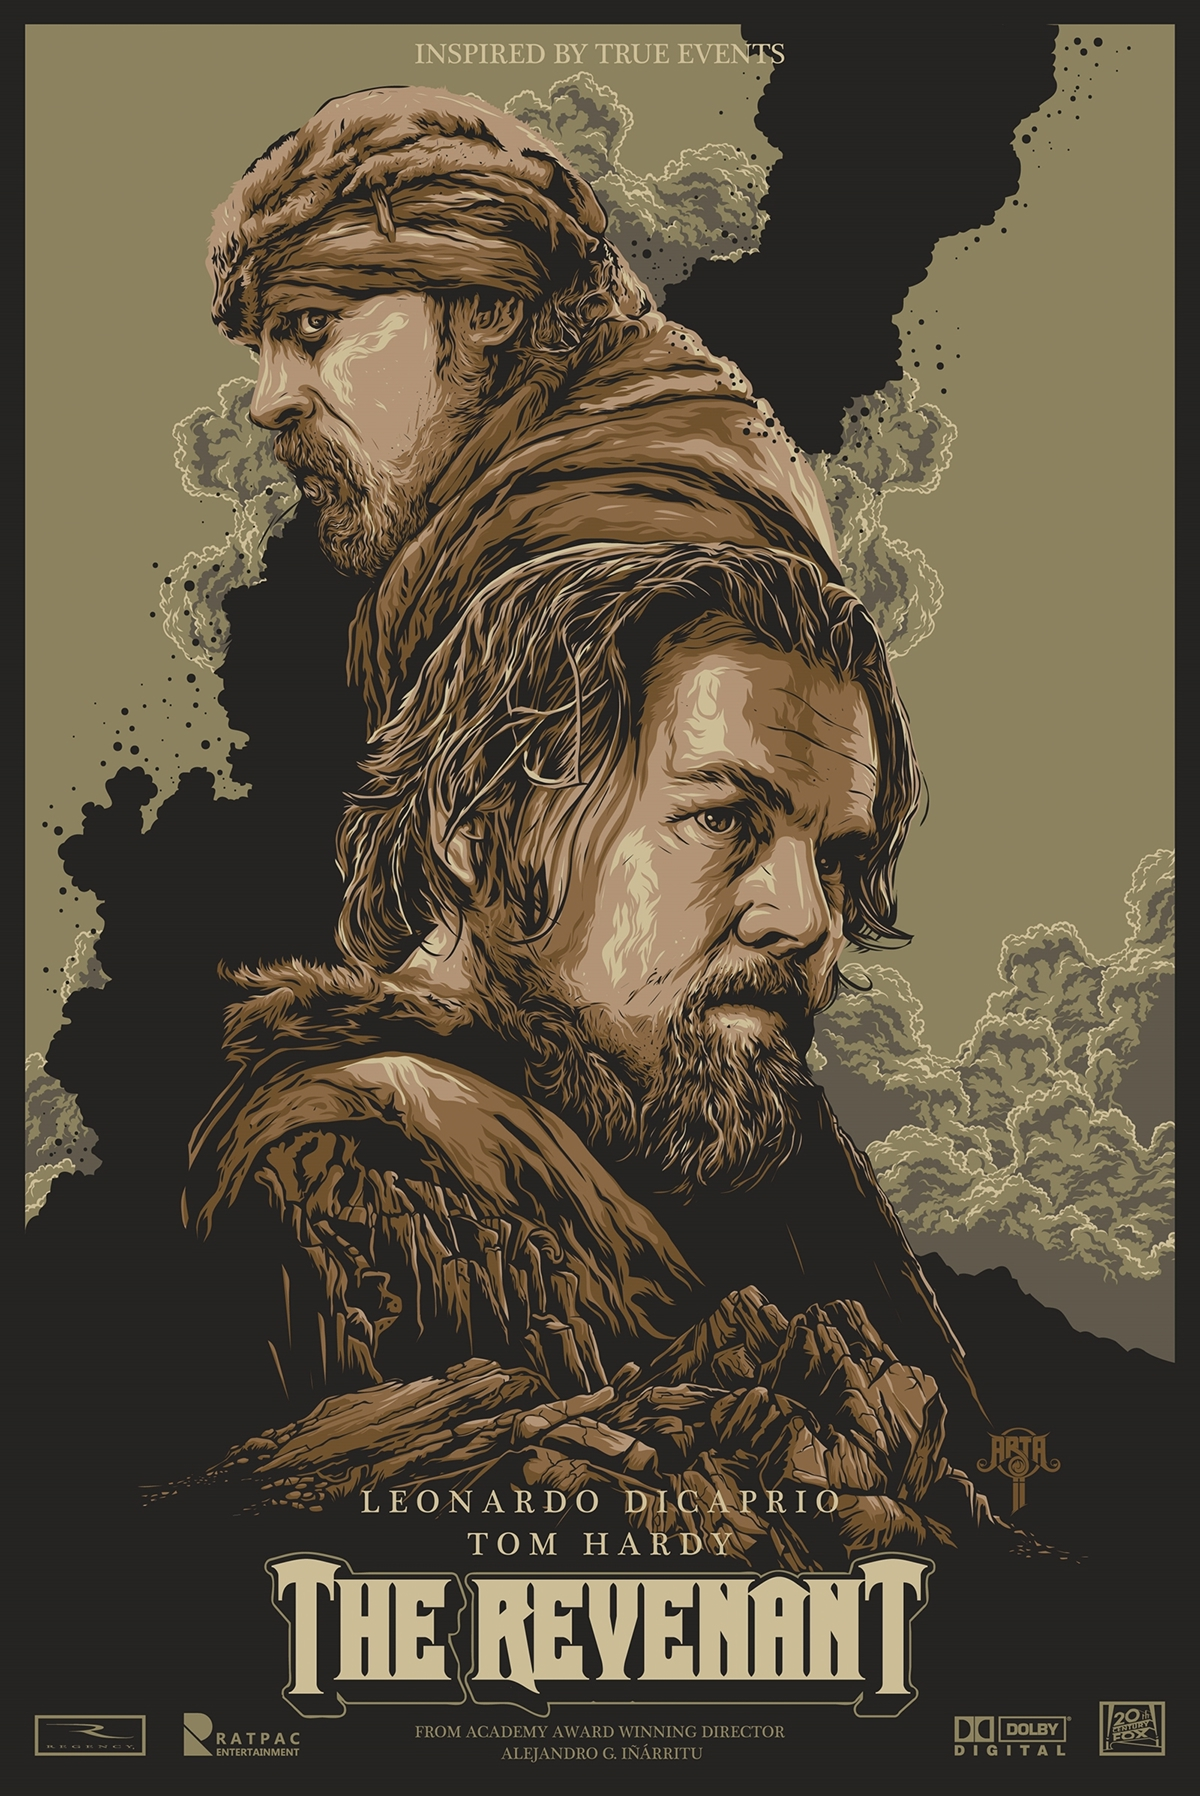 the revenant unofficial fanart movie poster on behance